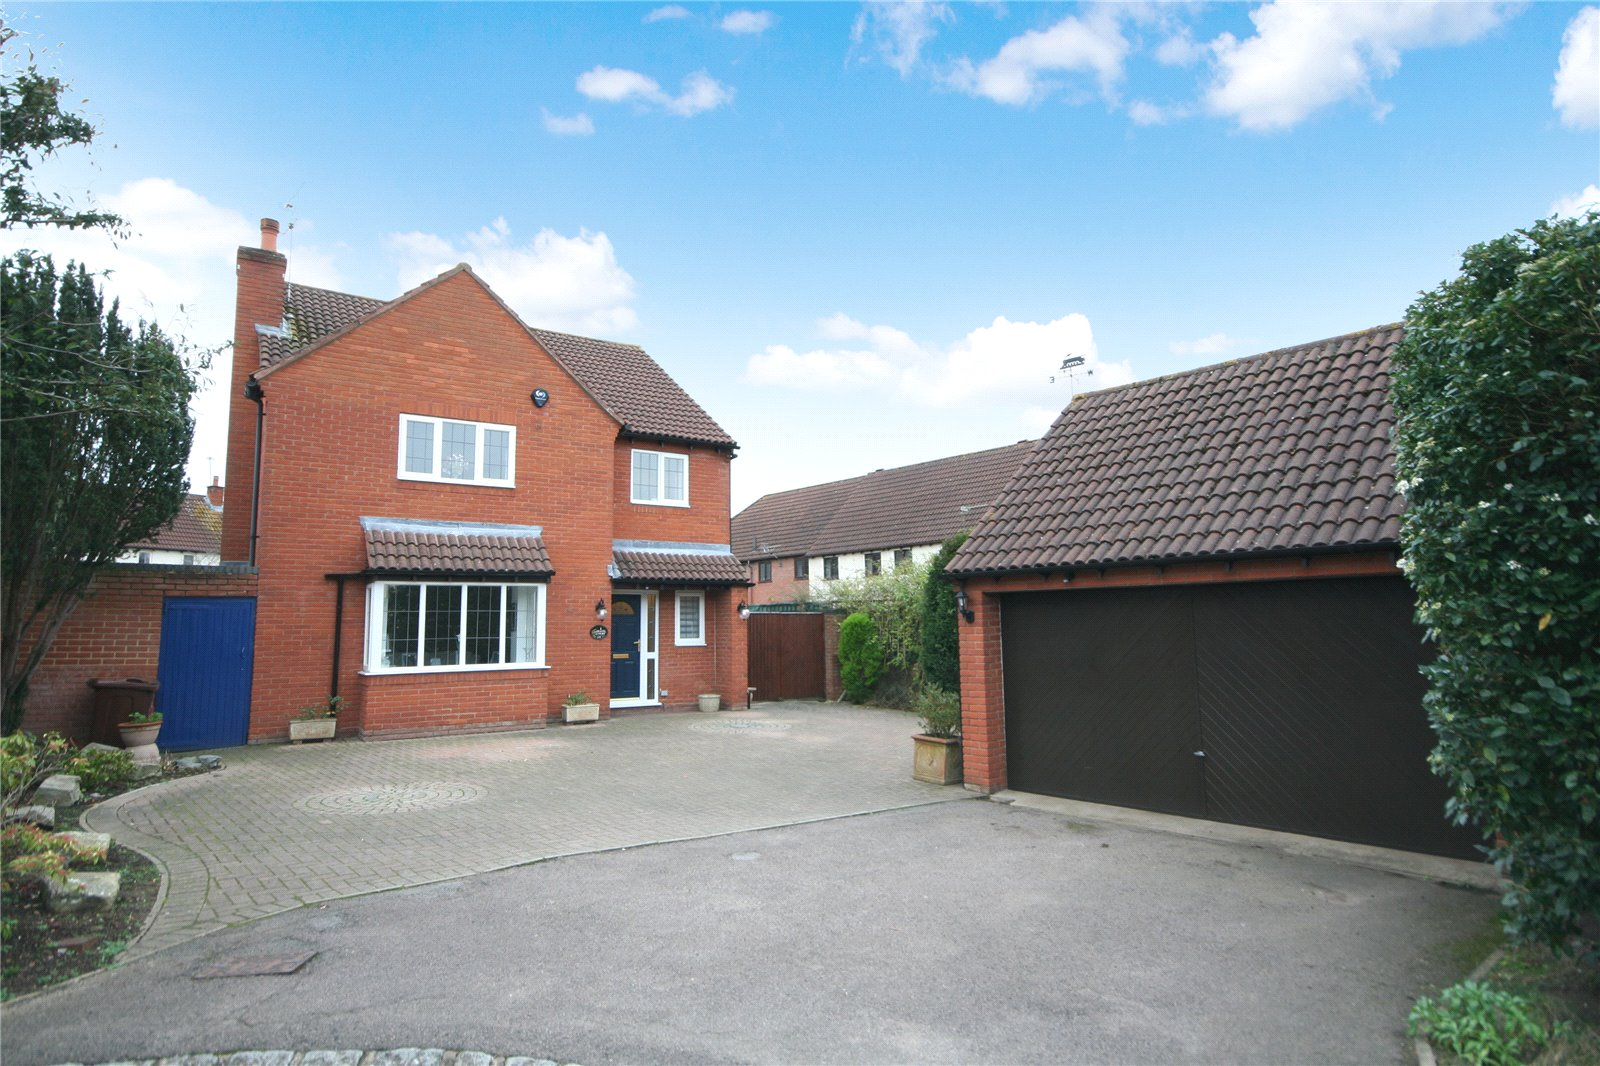 Cj Hole Cheltenham 4 Bedroom House For Sale In Deans Court